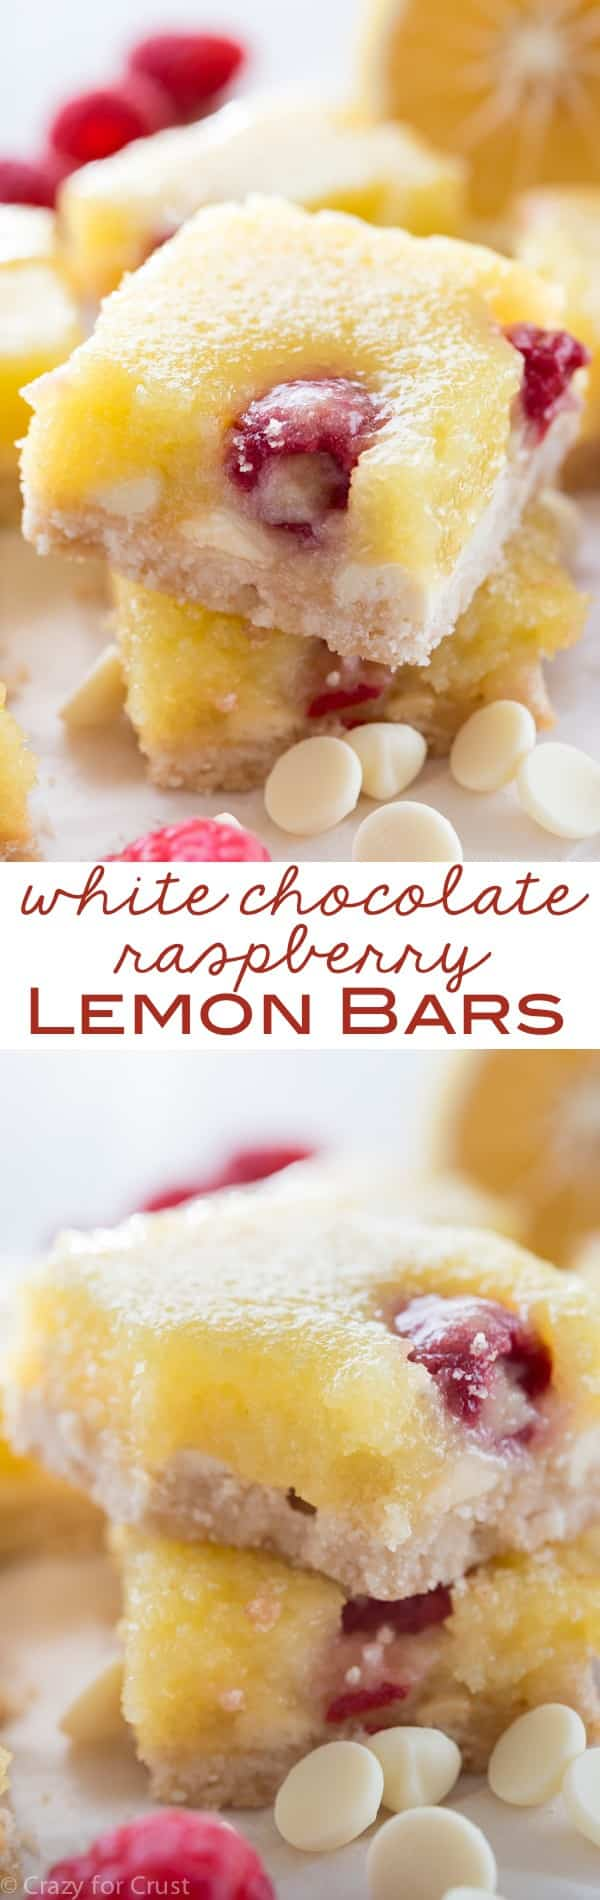 White Chocolate Rasberry Lemon Bars - add flavor to your favorite lemon bar recipe!